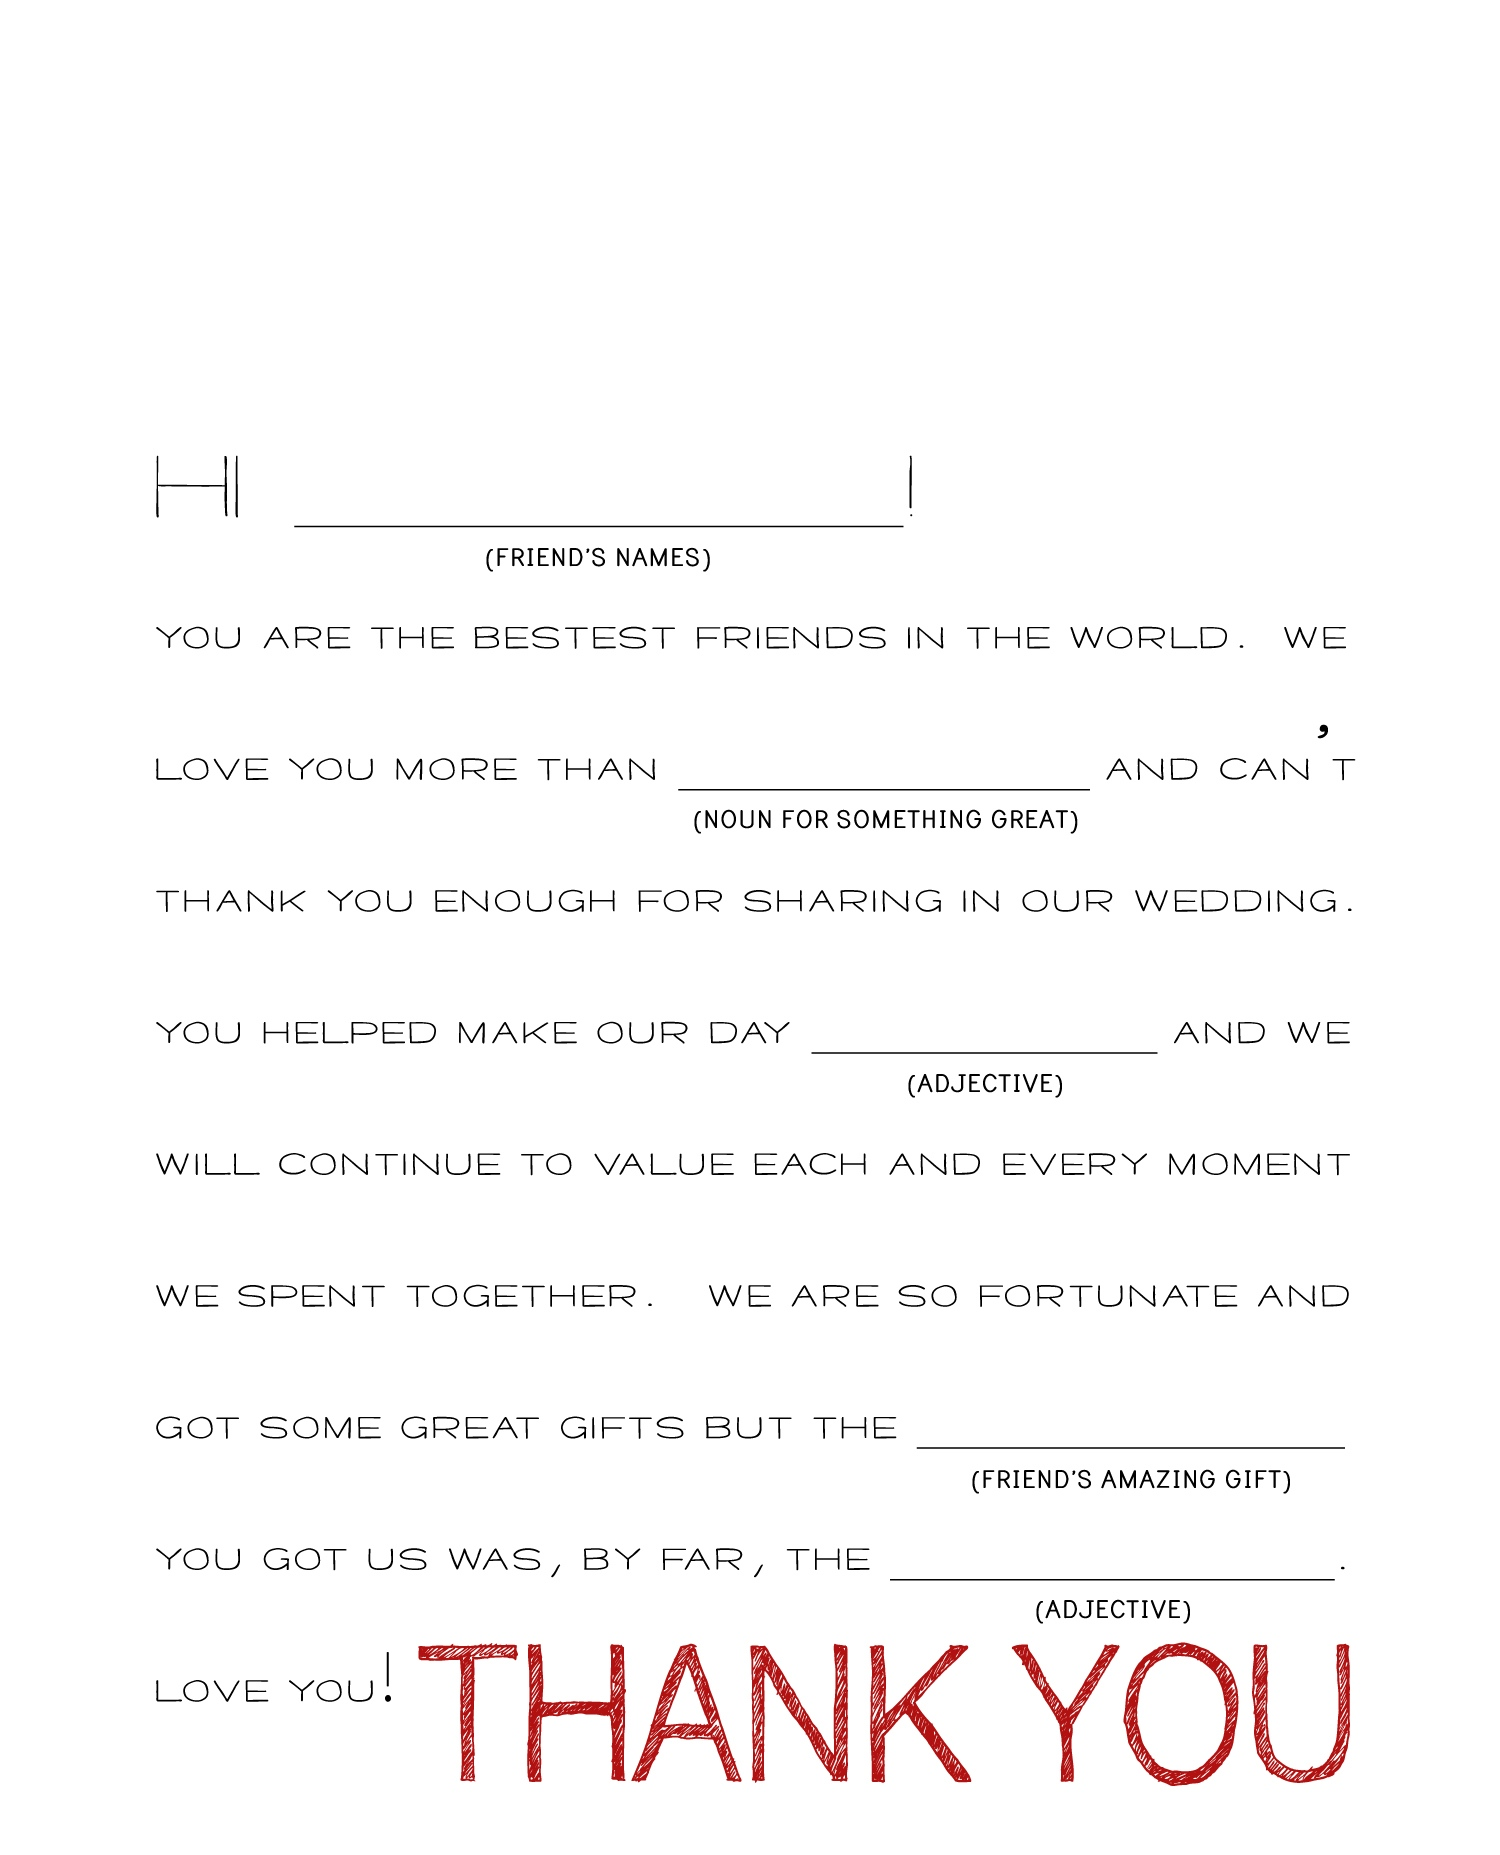 Sample thank you note for money letter wedding gift of choice